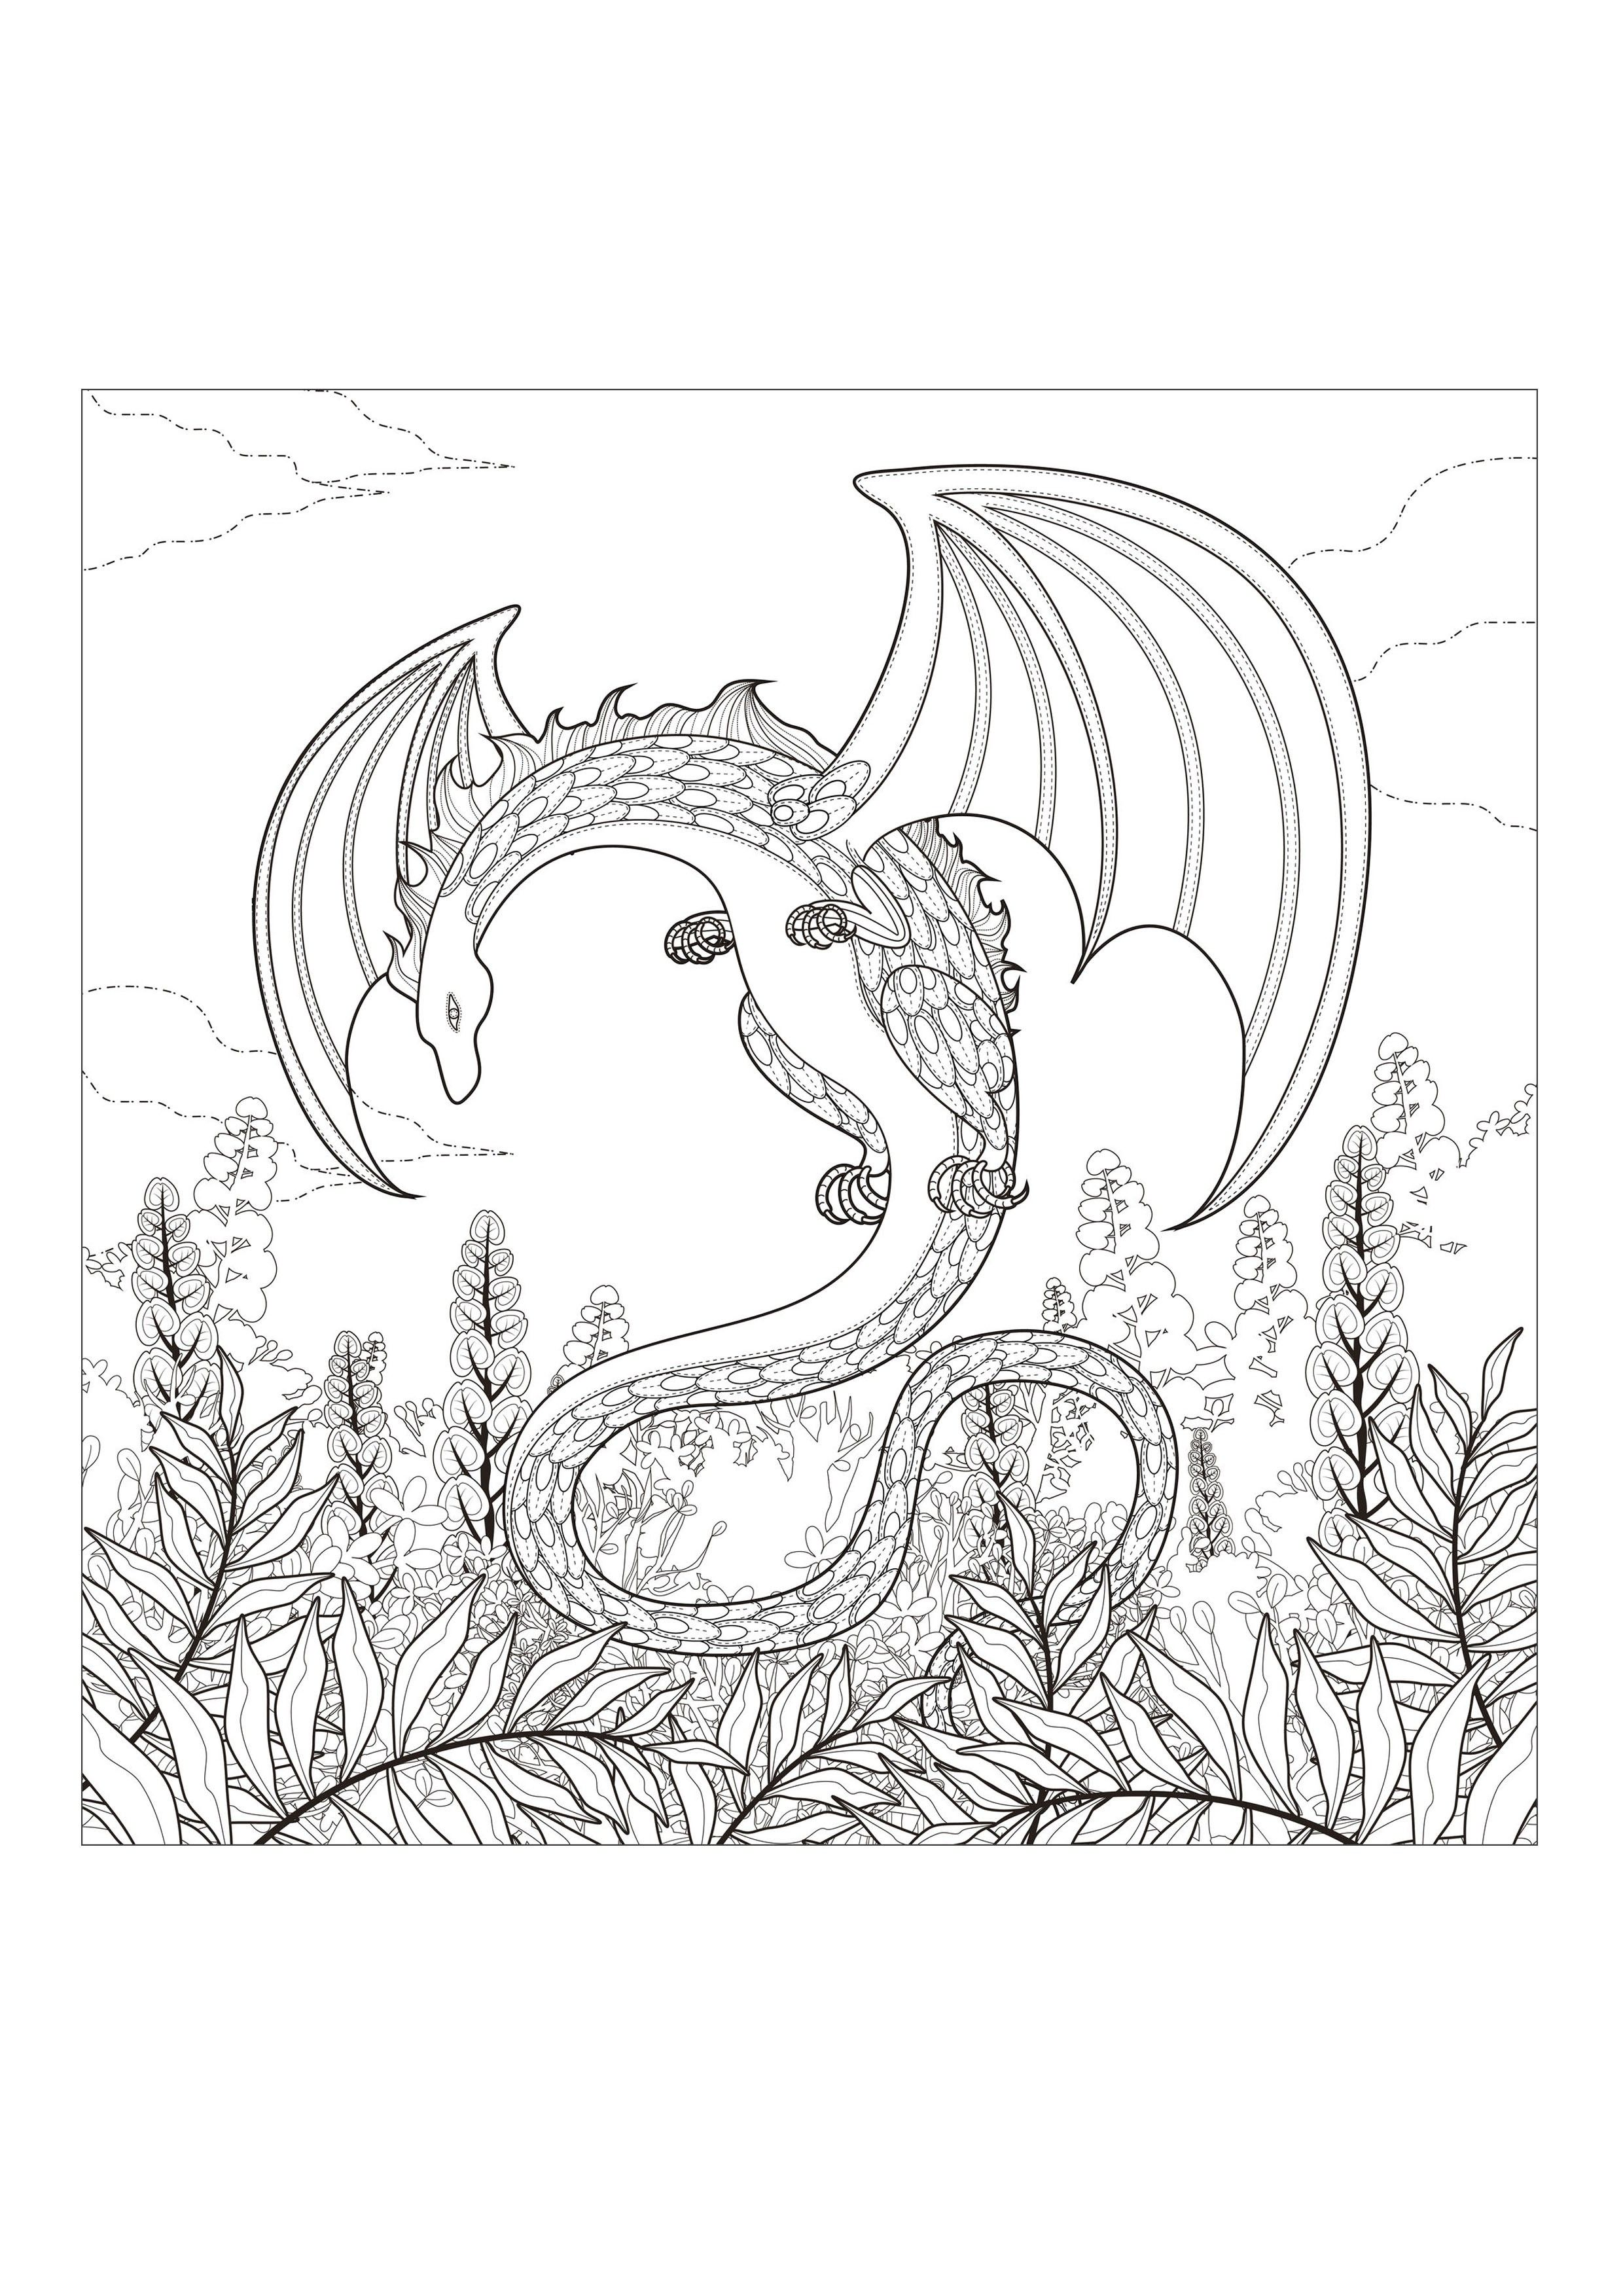 Dragon Coloring Pages for Adults | Monster coloring pages ...